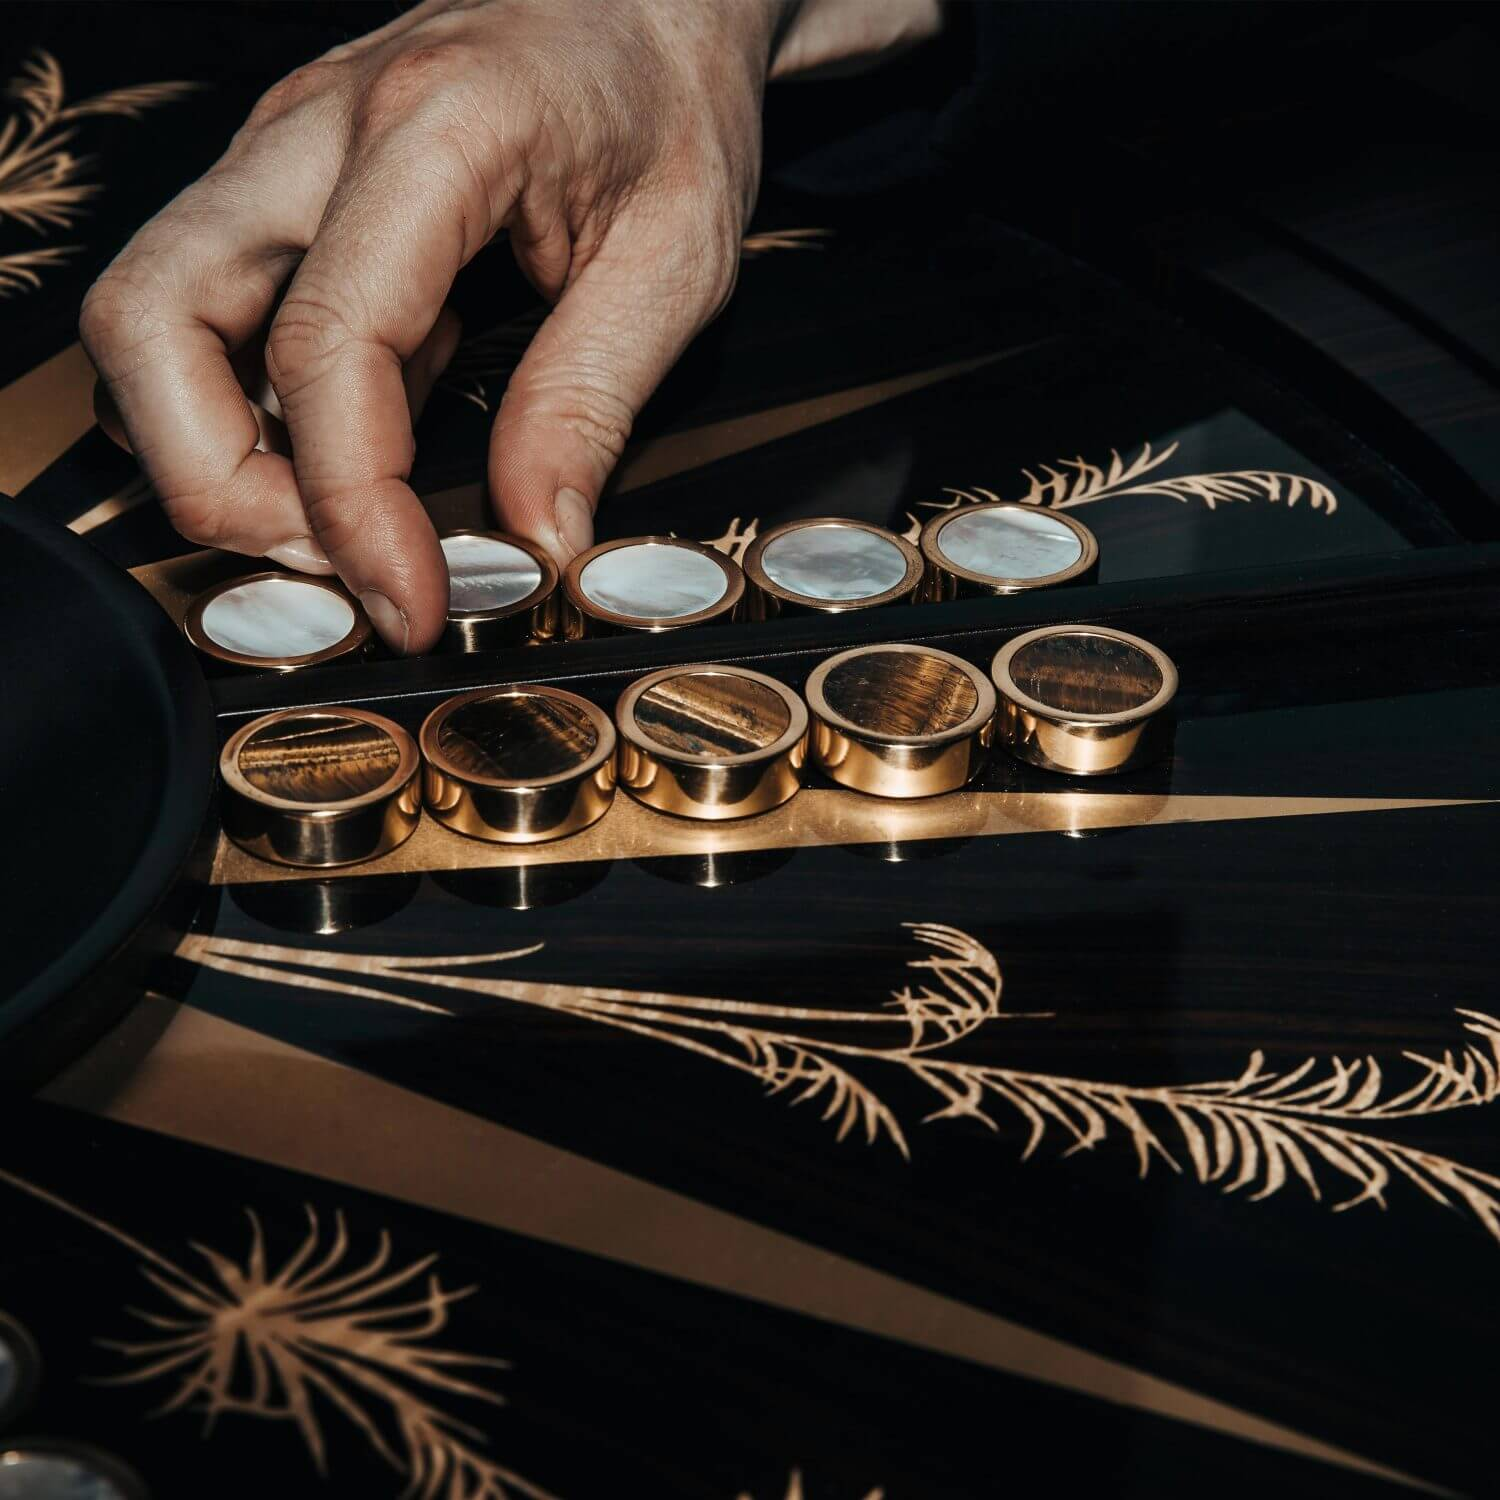 A man playing backgammon with semi-precious stone playing pieces